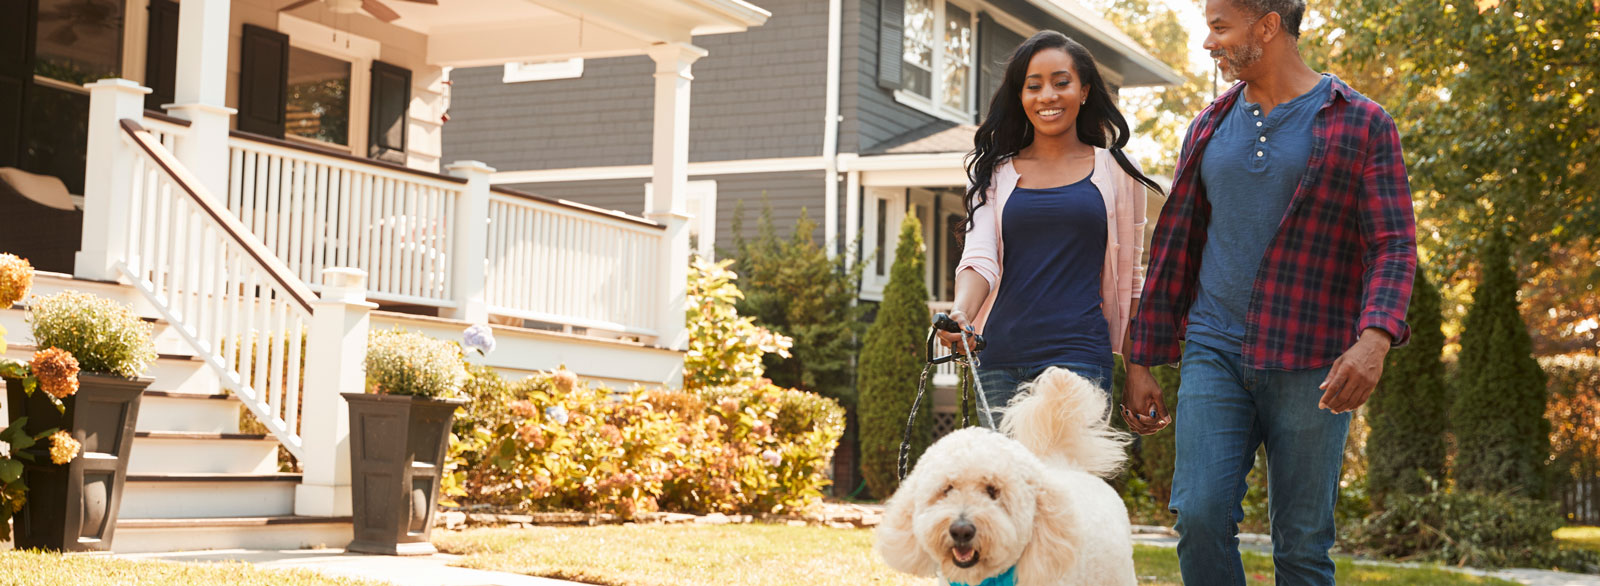 Couple walks dog through established neighborhood